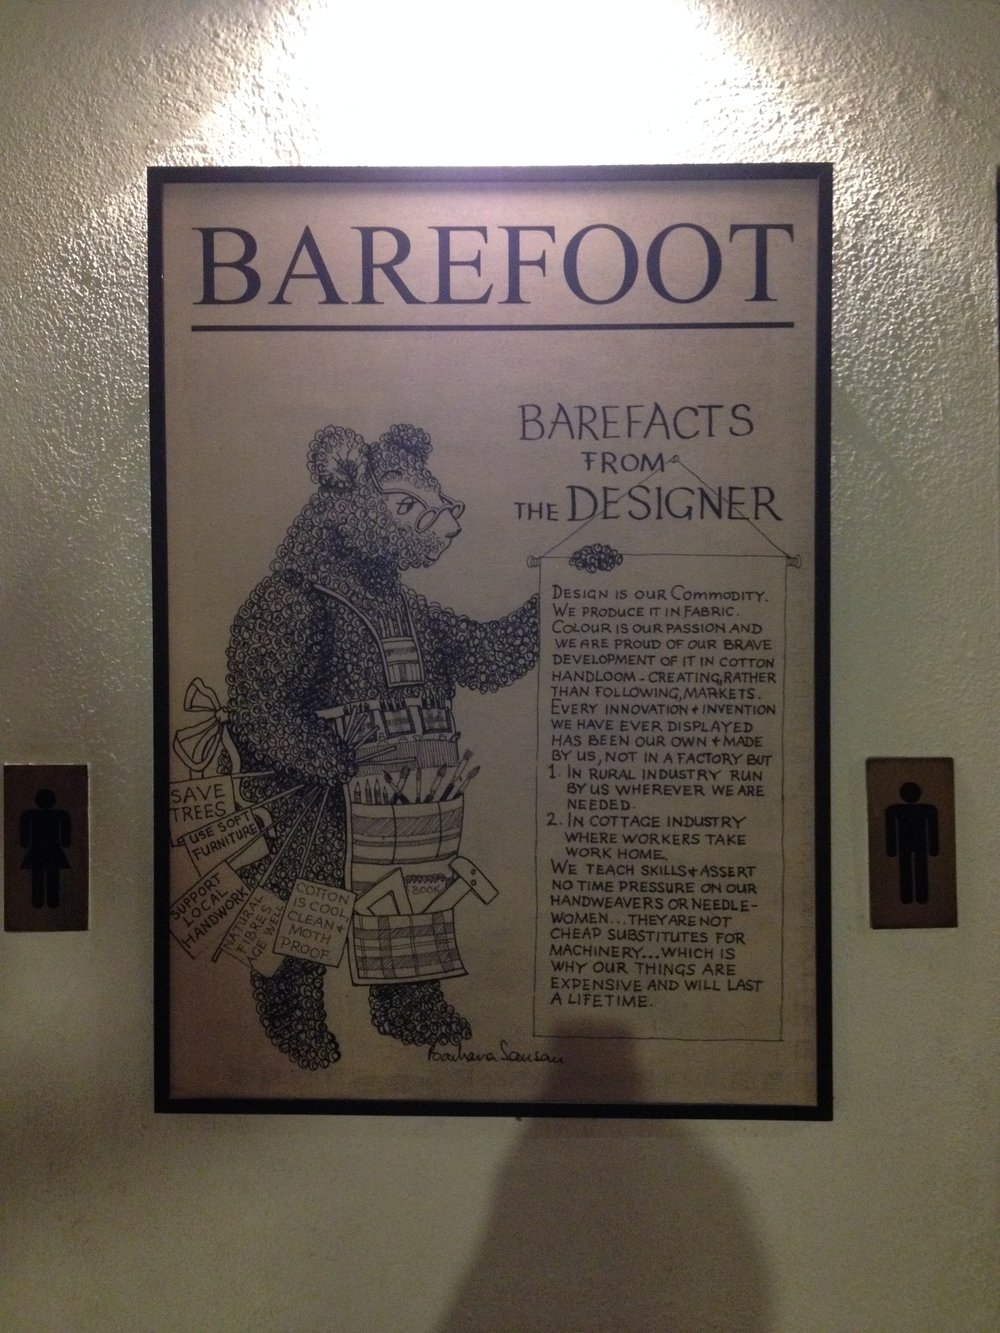 Information about Barefoot on display at their Colombo store